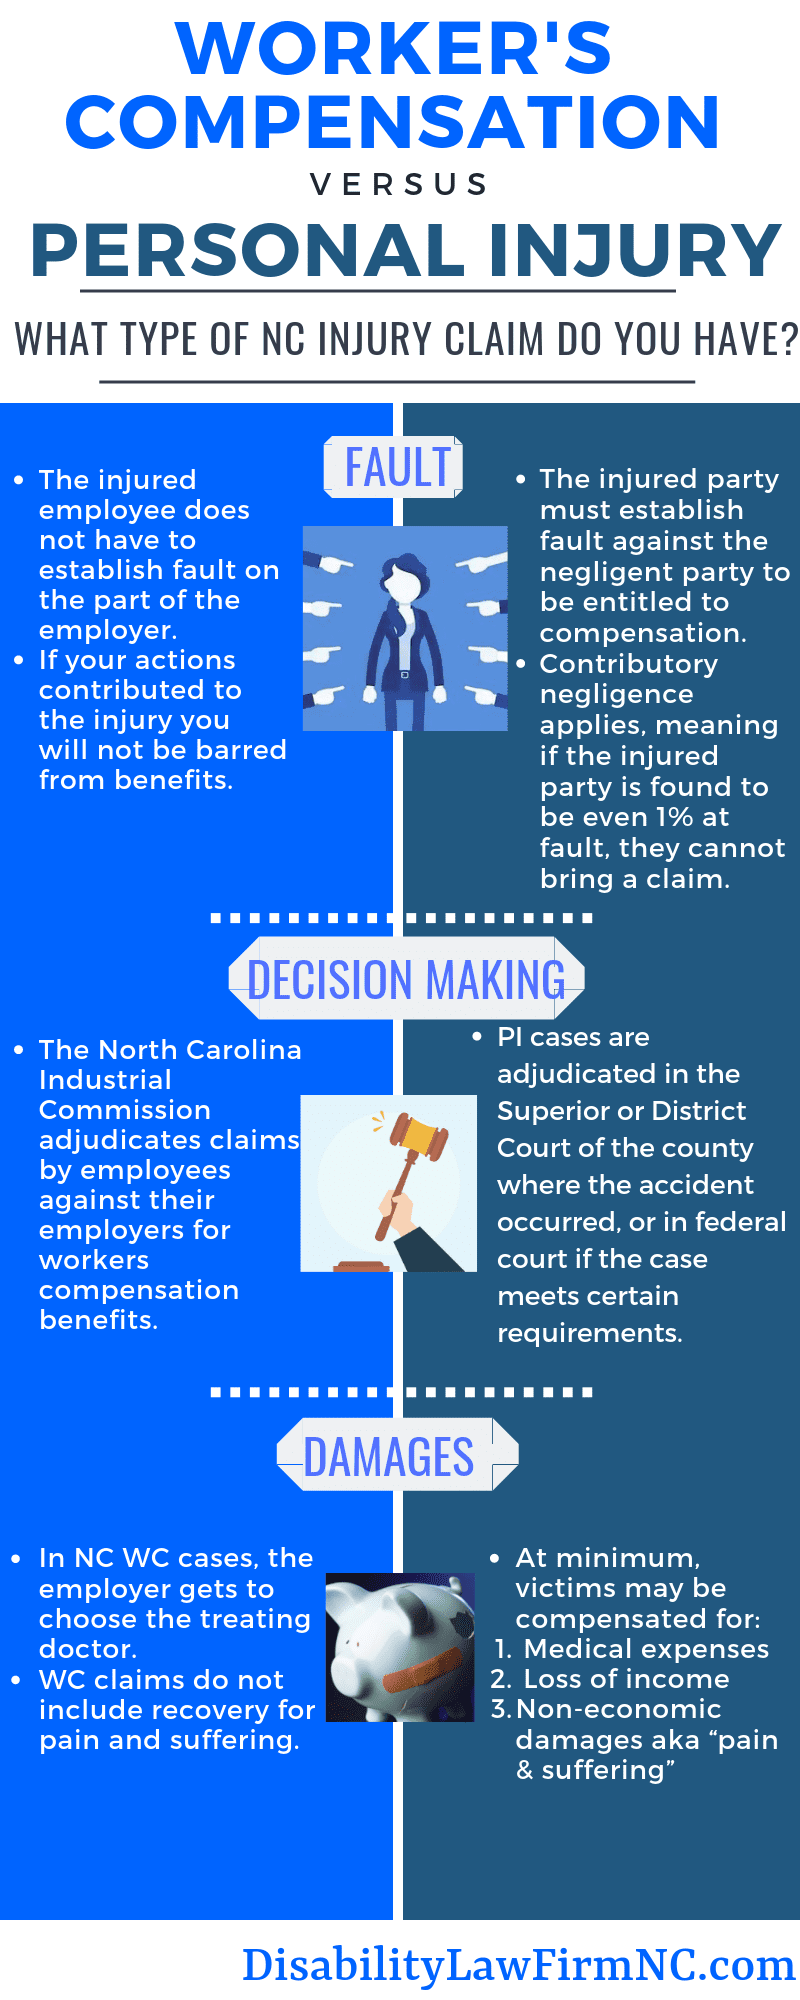 NC Worker's Compensation vs. Personal Injury